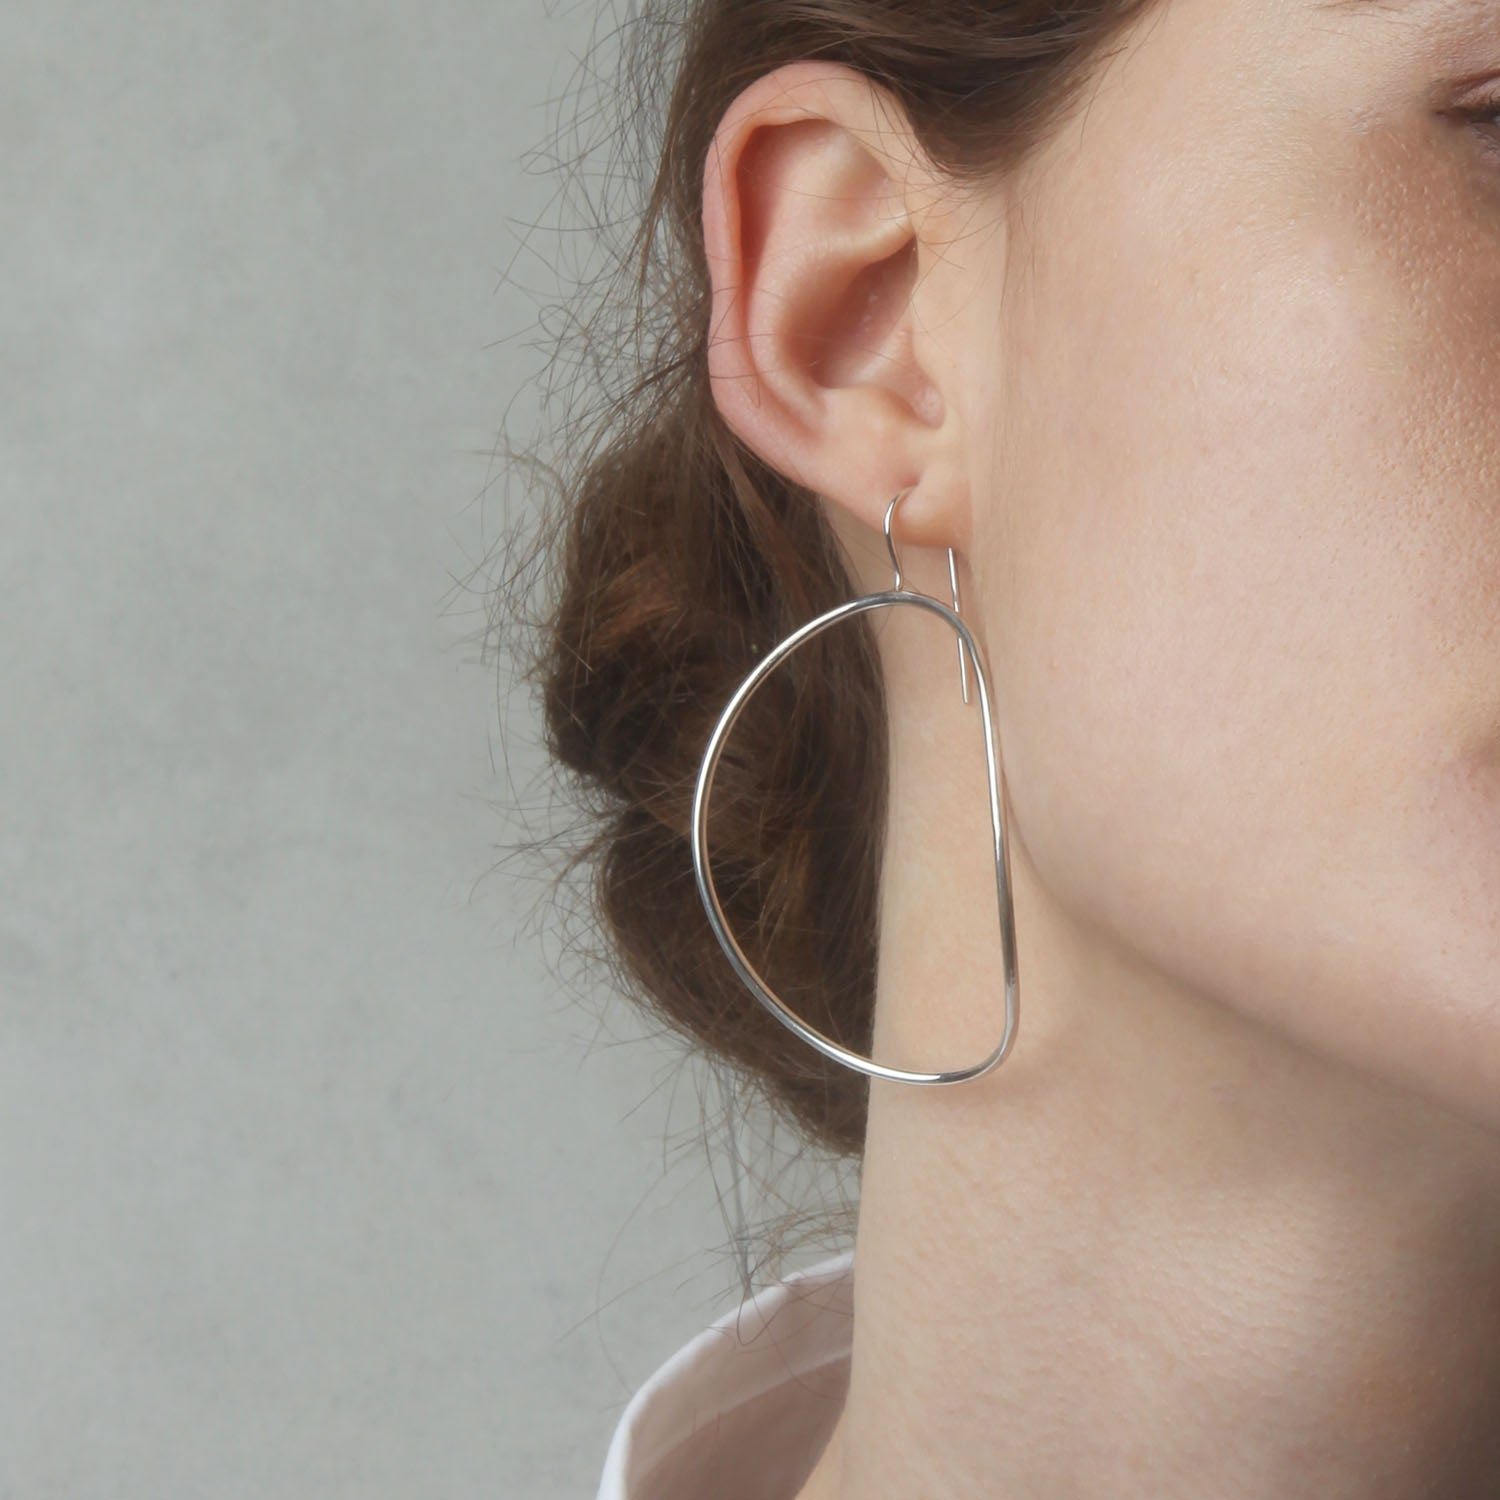 Large Arch Earrings - Solid Gold